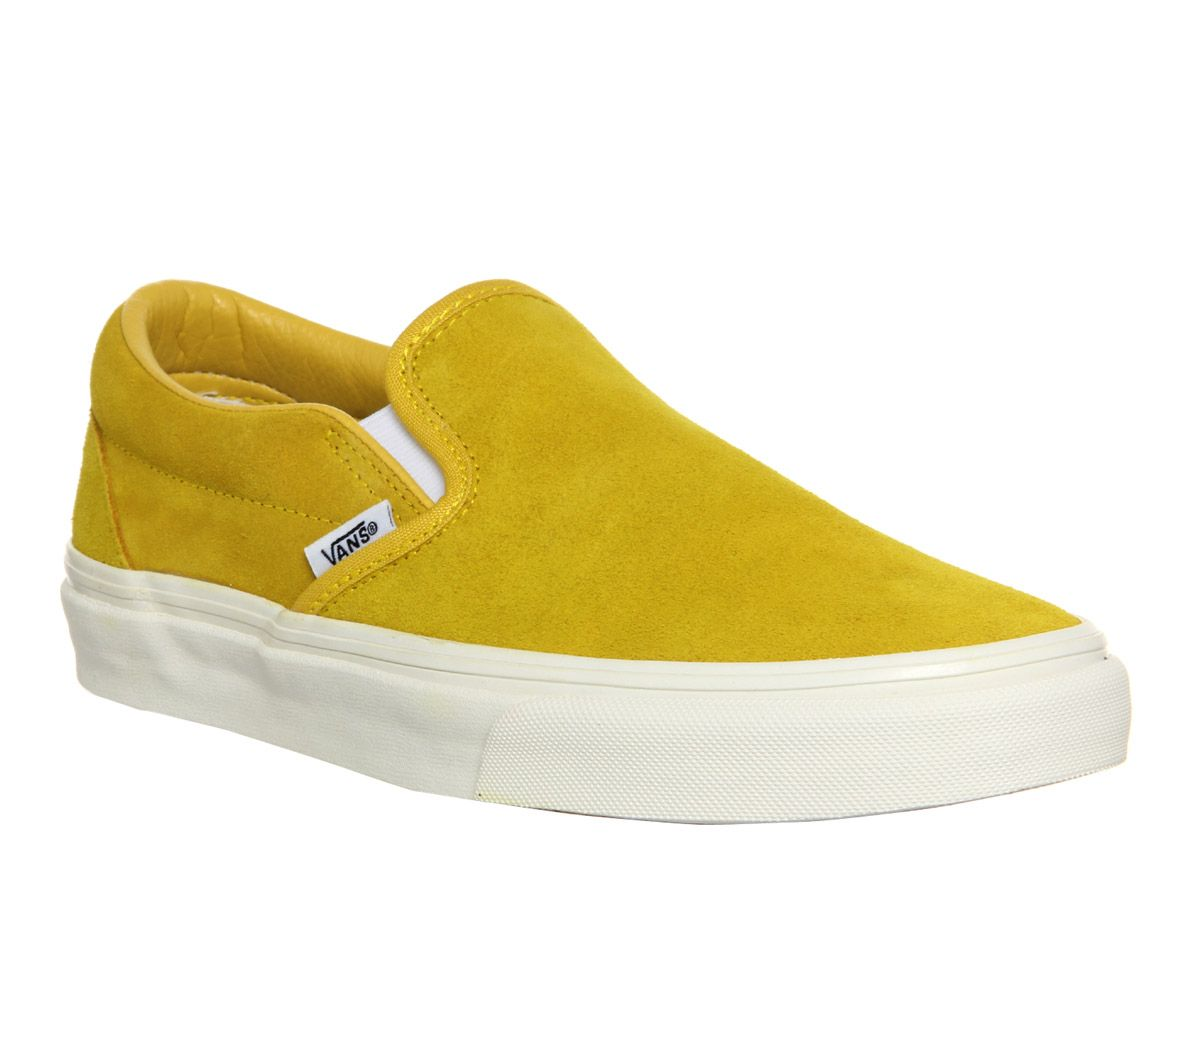 0e5cd9bcd8daf9 Vans Vans Classic Slip On Vintage Suede Sulphur Yellow - Unisex Sports